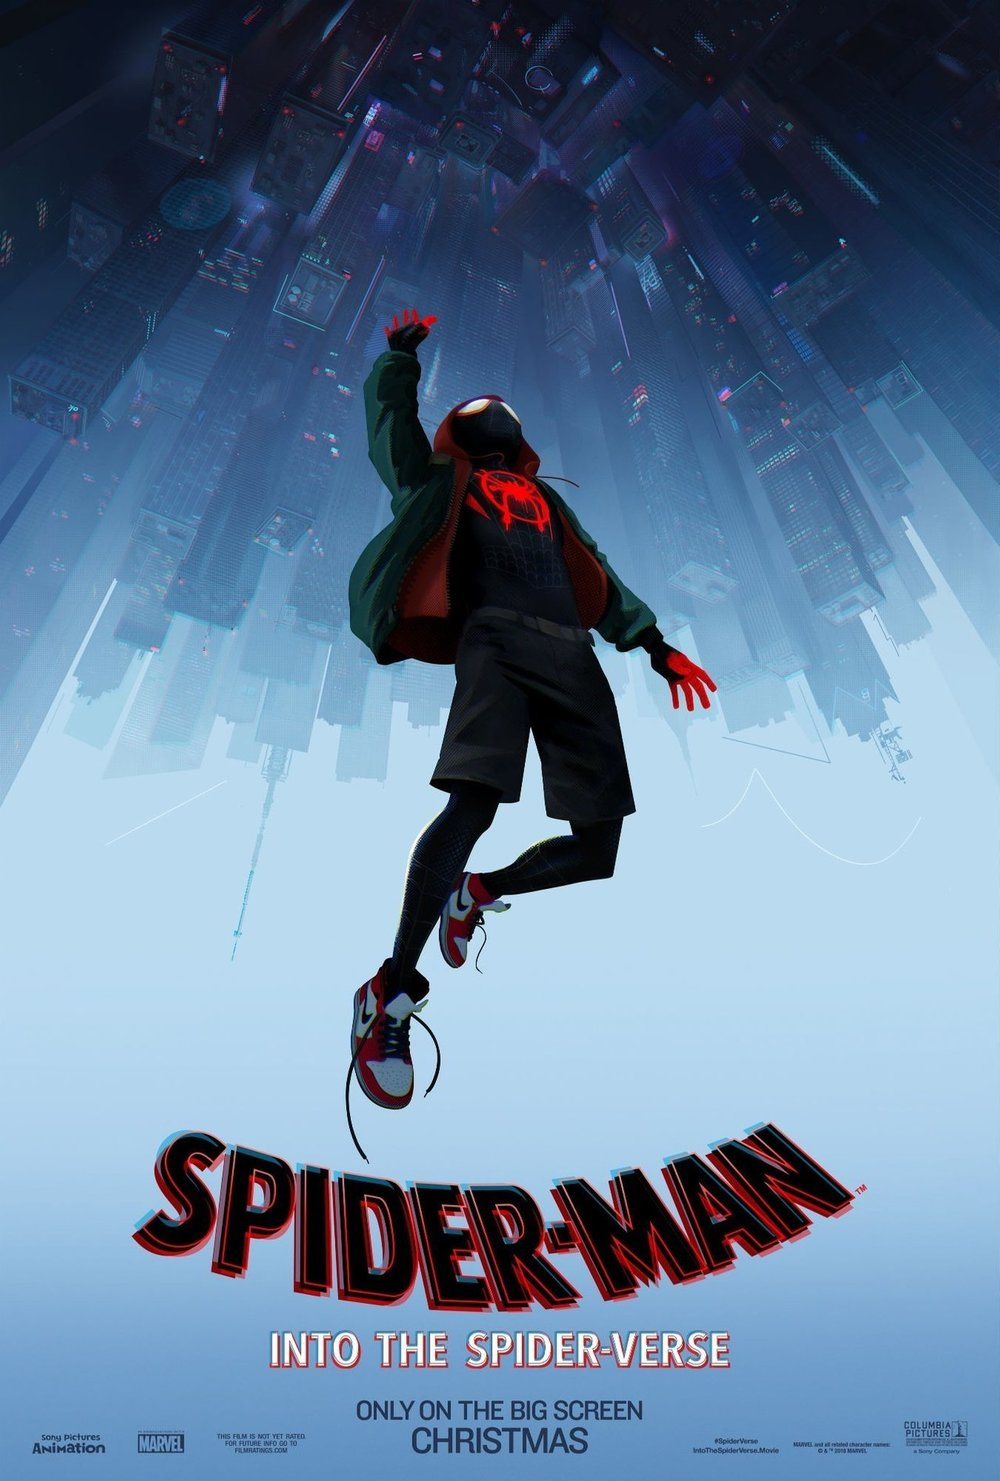 spider-man-into-the-spider-verse-dom-asm-online-1sht-6072x9000-05-aoj-rgb-1532383689774_1280w.jpg